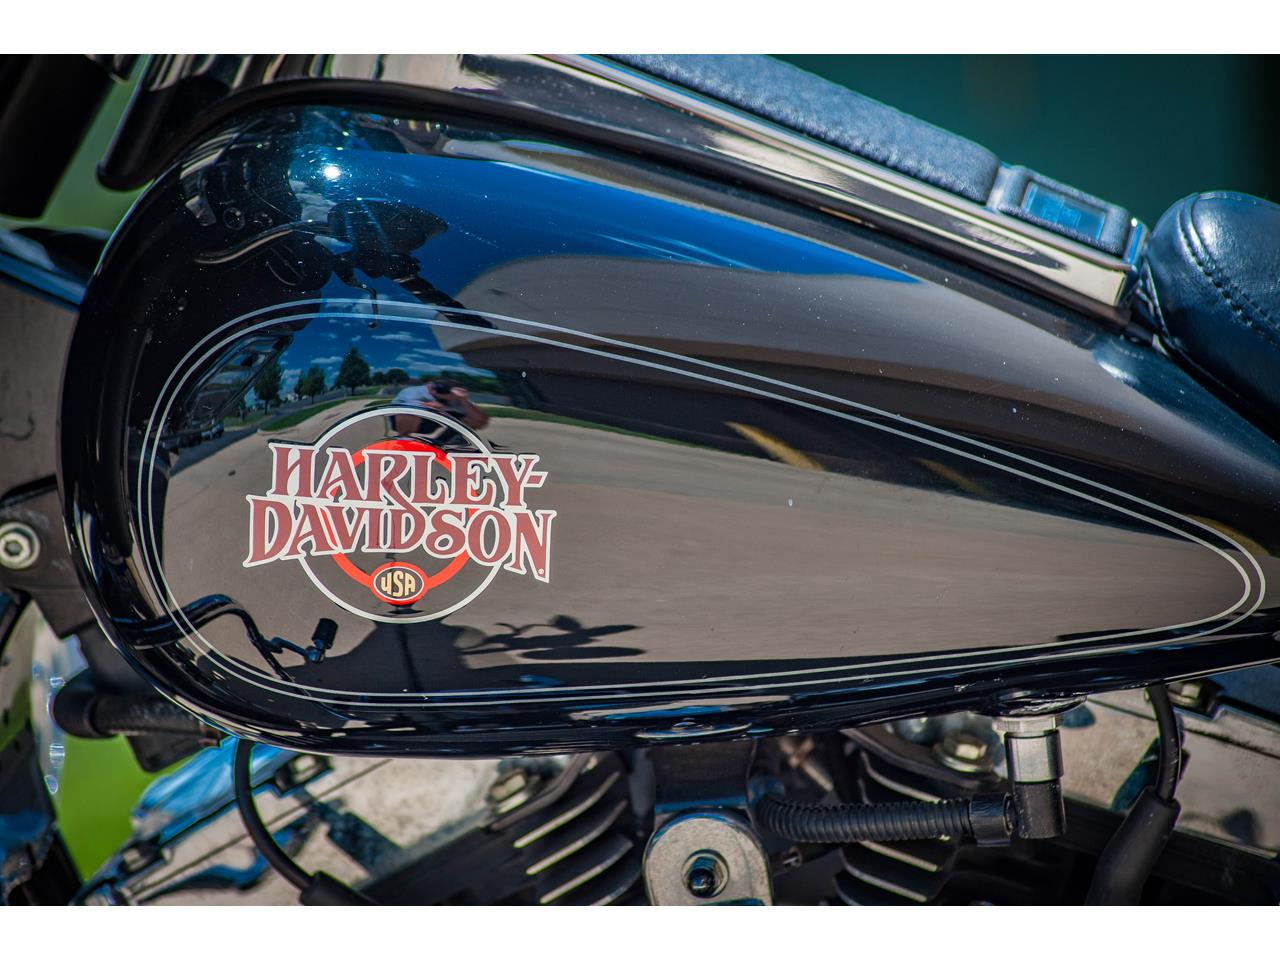 2004 Harley-Davidson Motorcycle for sale in O'Fallon, IL – photo 25